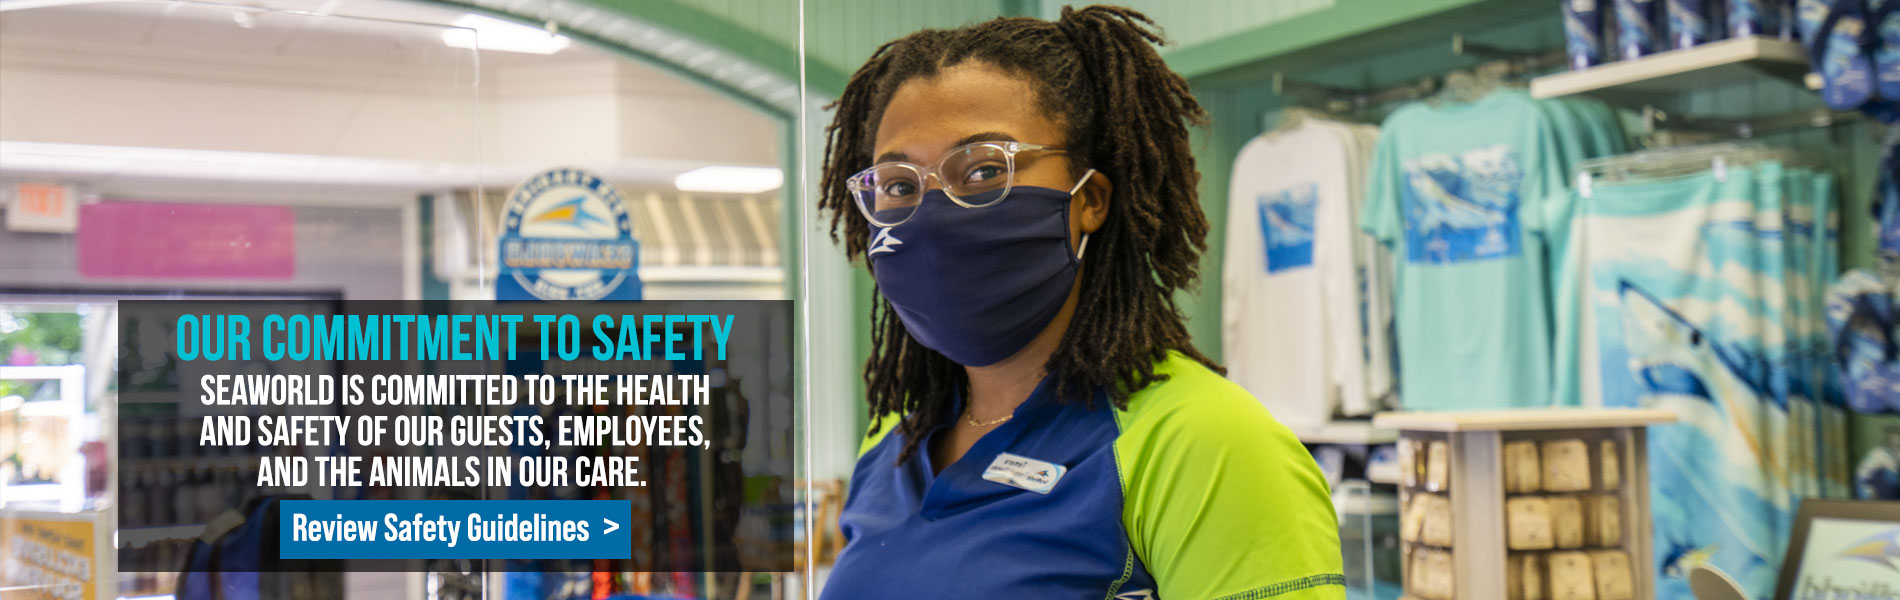 SeaWorld is committed to the health and safety of our guests and ambassadors